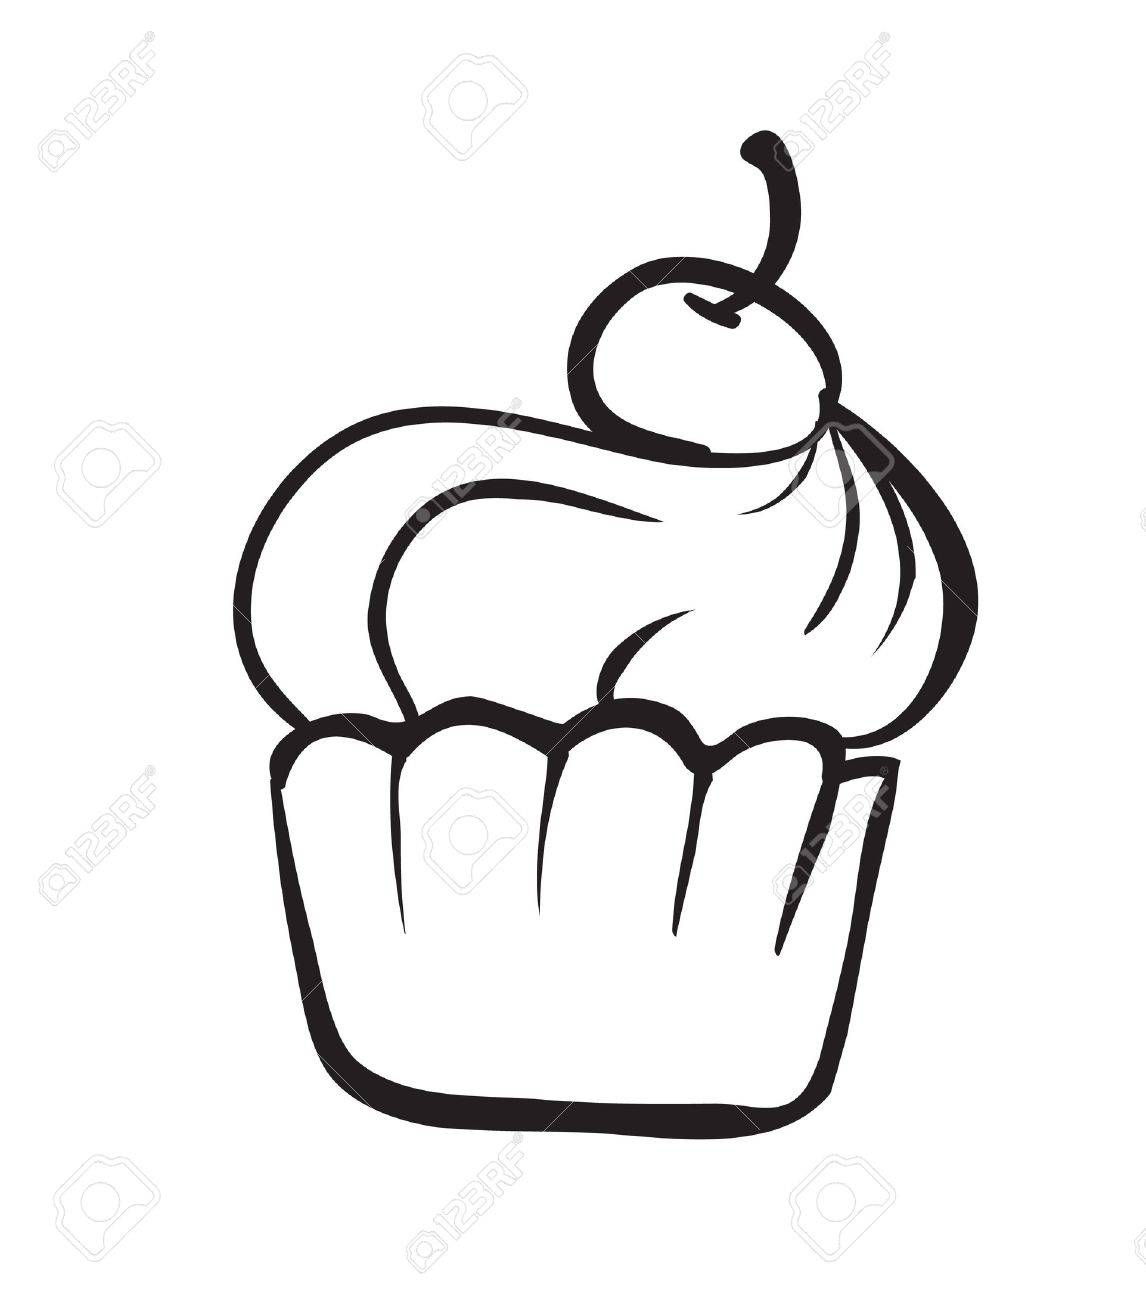 detailed illustration on a cake on a white background Stock Vector - 15899106